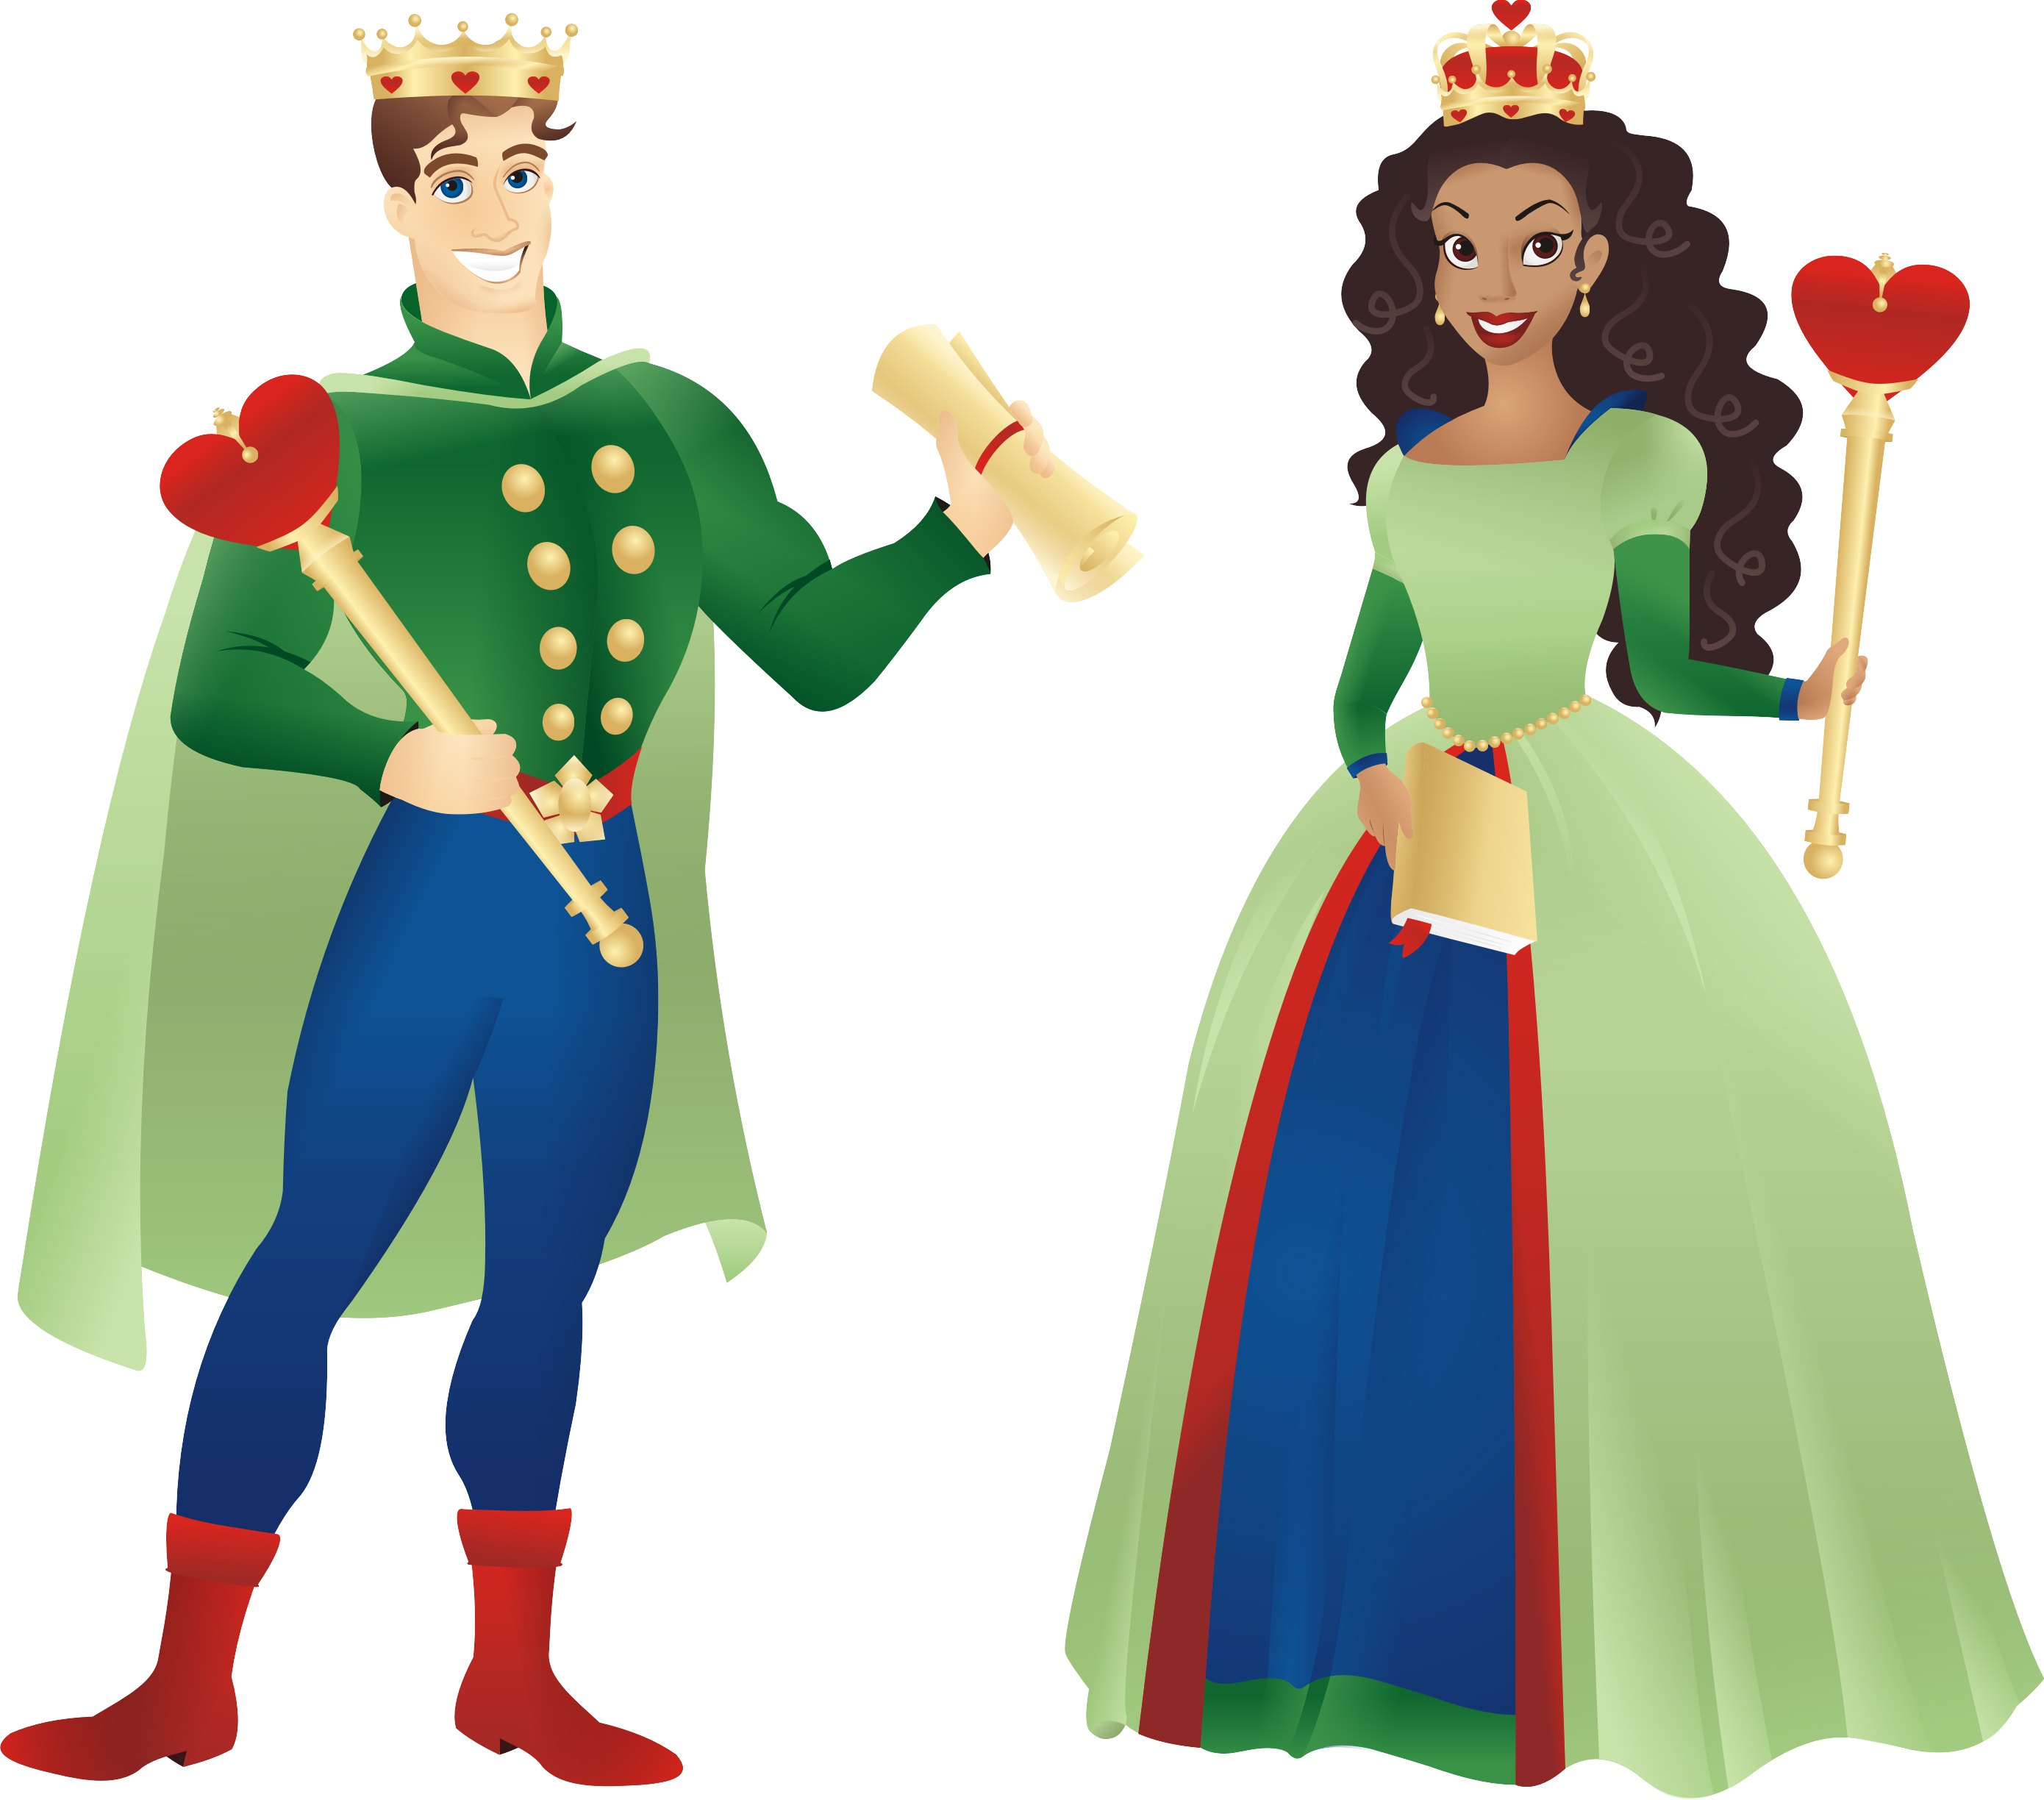 King clipart quenn. Cute queen